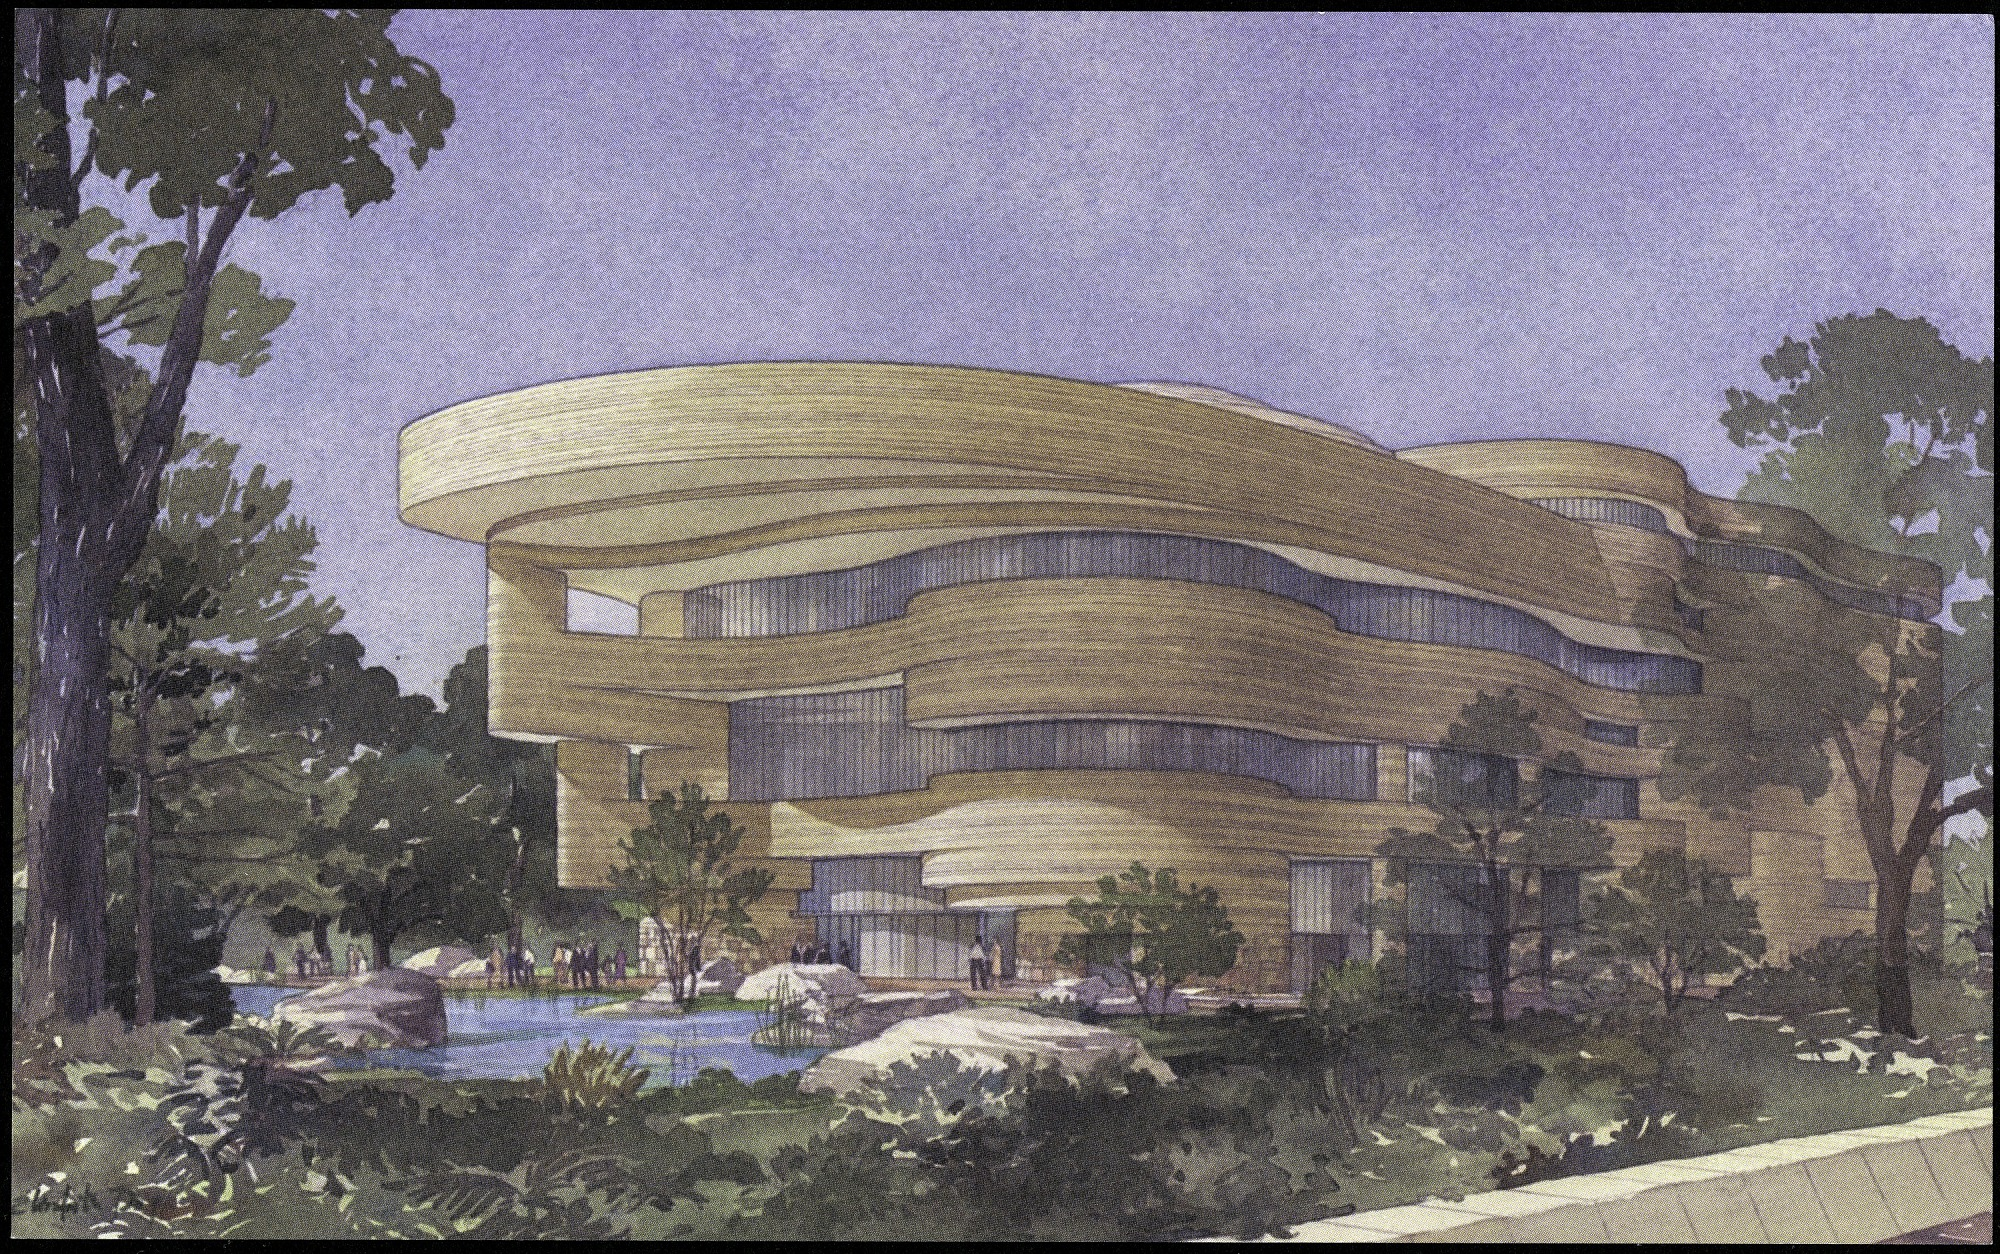 Postcard of the National Museum of the American Indian